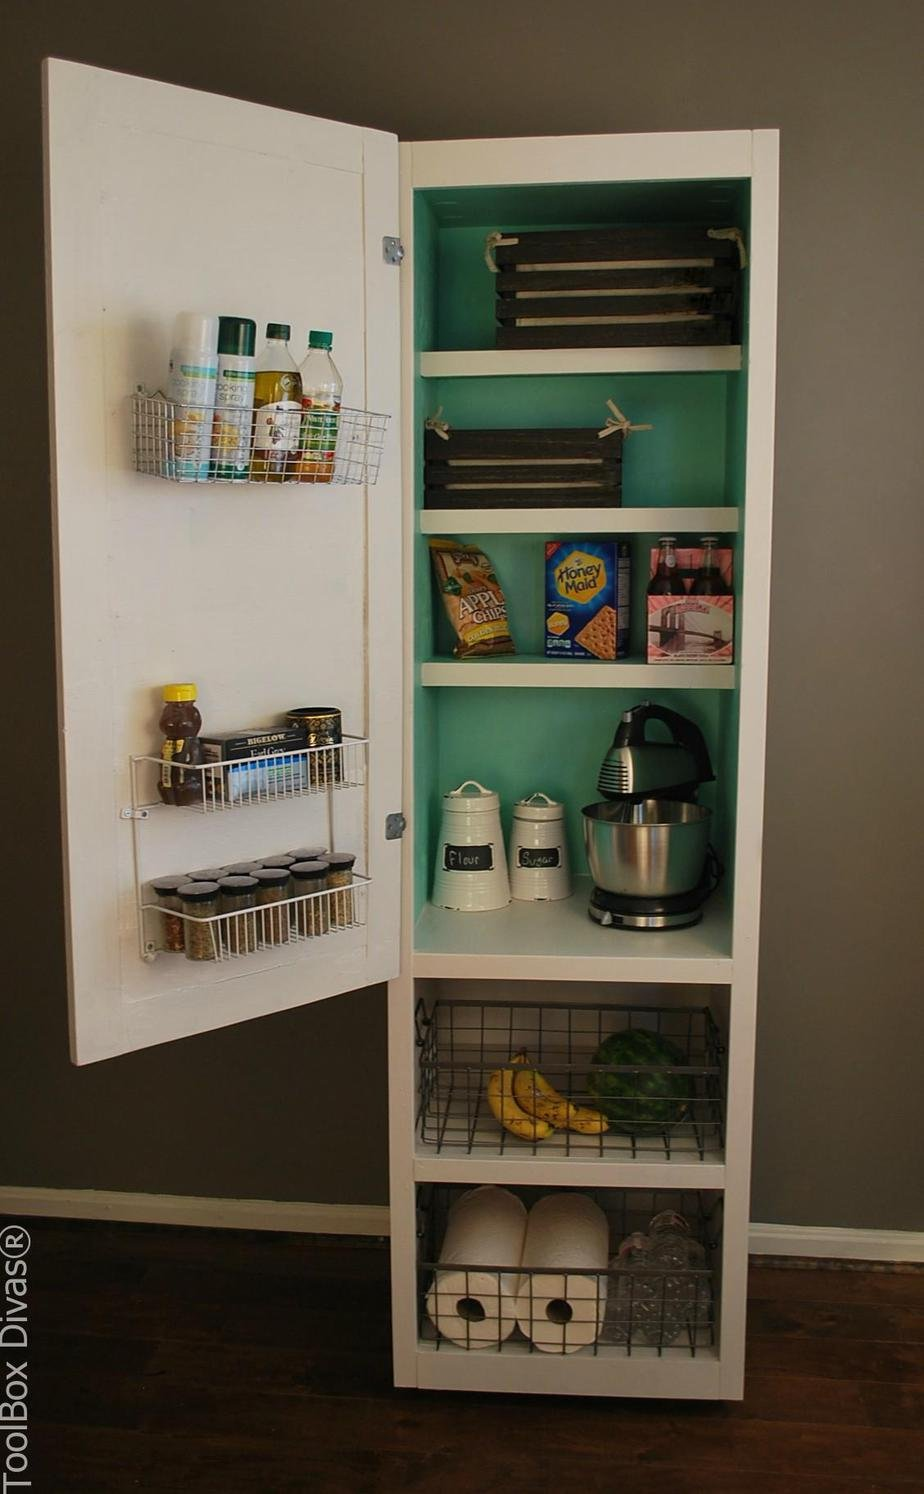 2. Build This DIY Mobile Pantry Cabinet by simphome.com